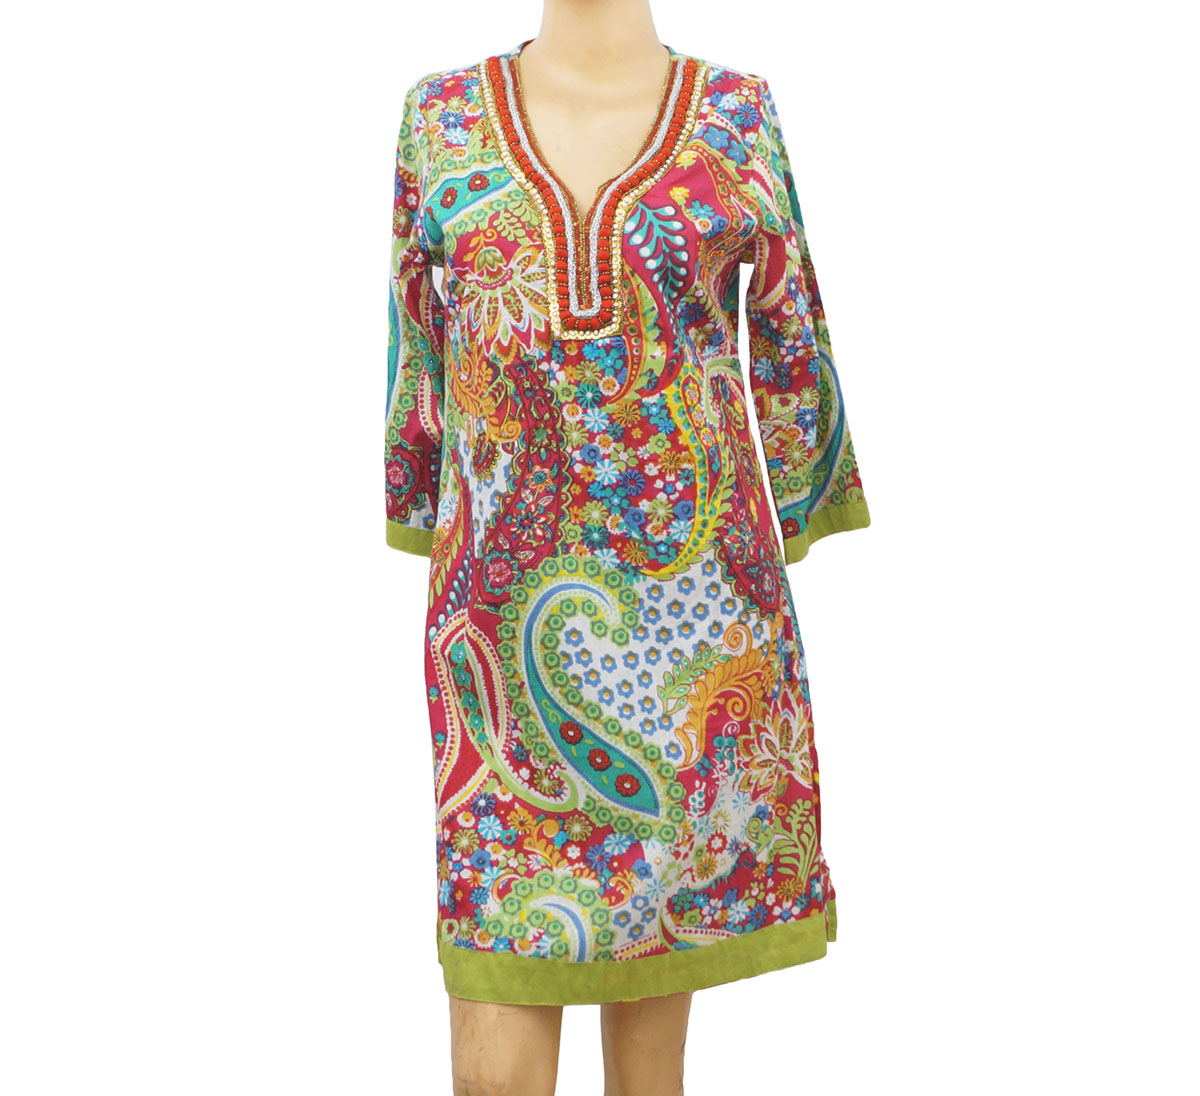 11cbf0134c Kaftans Manufacturers ,Exporters from India - KK Fashion Exports.